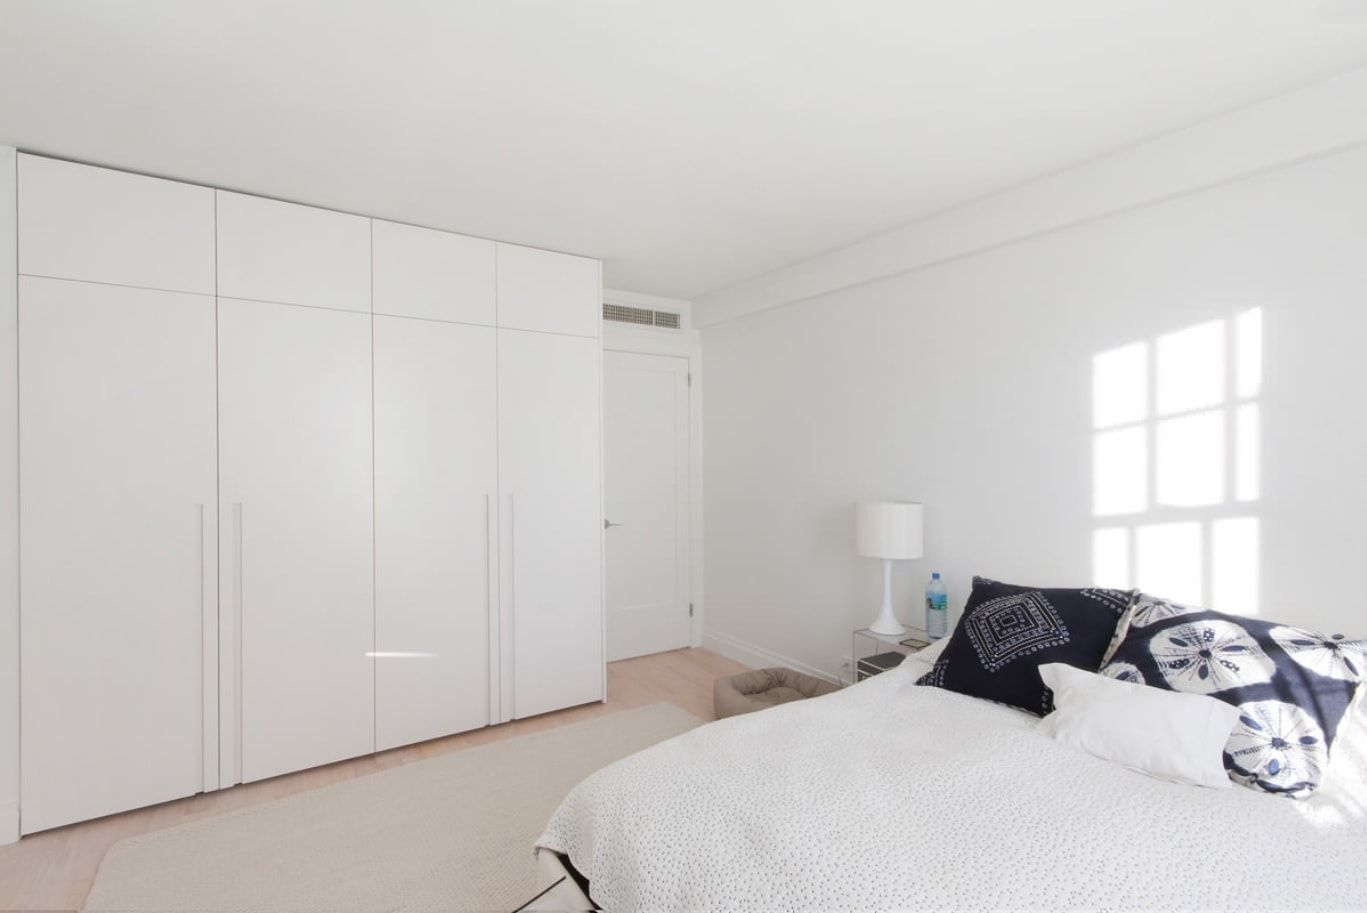 Minimalist Interior Design Examples in Different Rooms. White matte surfaces in sterile white bedroom with wooden floor